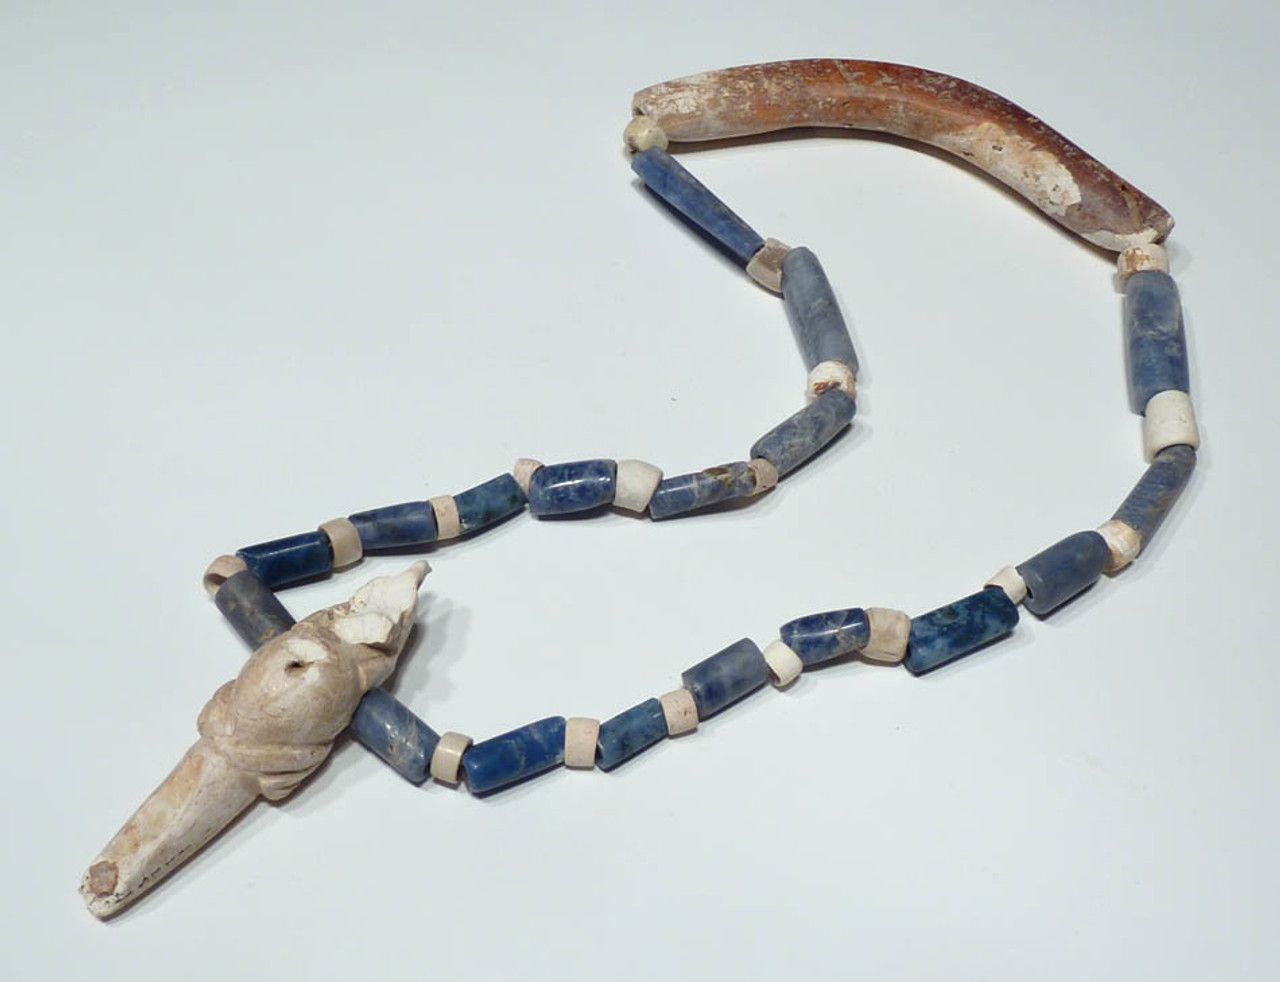 PC036 - ULTRA RARE MUSEUM GRADE PRE-COLUMBIAN STONE AND SHELL NECKLACE COMPLETE WITH ALL ORIGINAL COMPONENTS